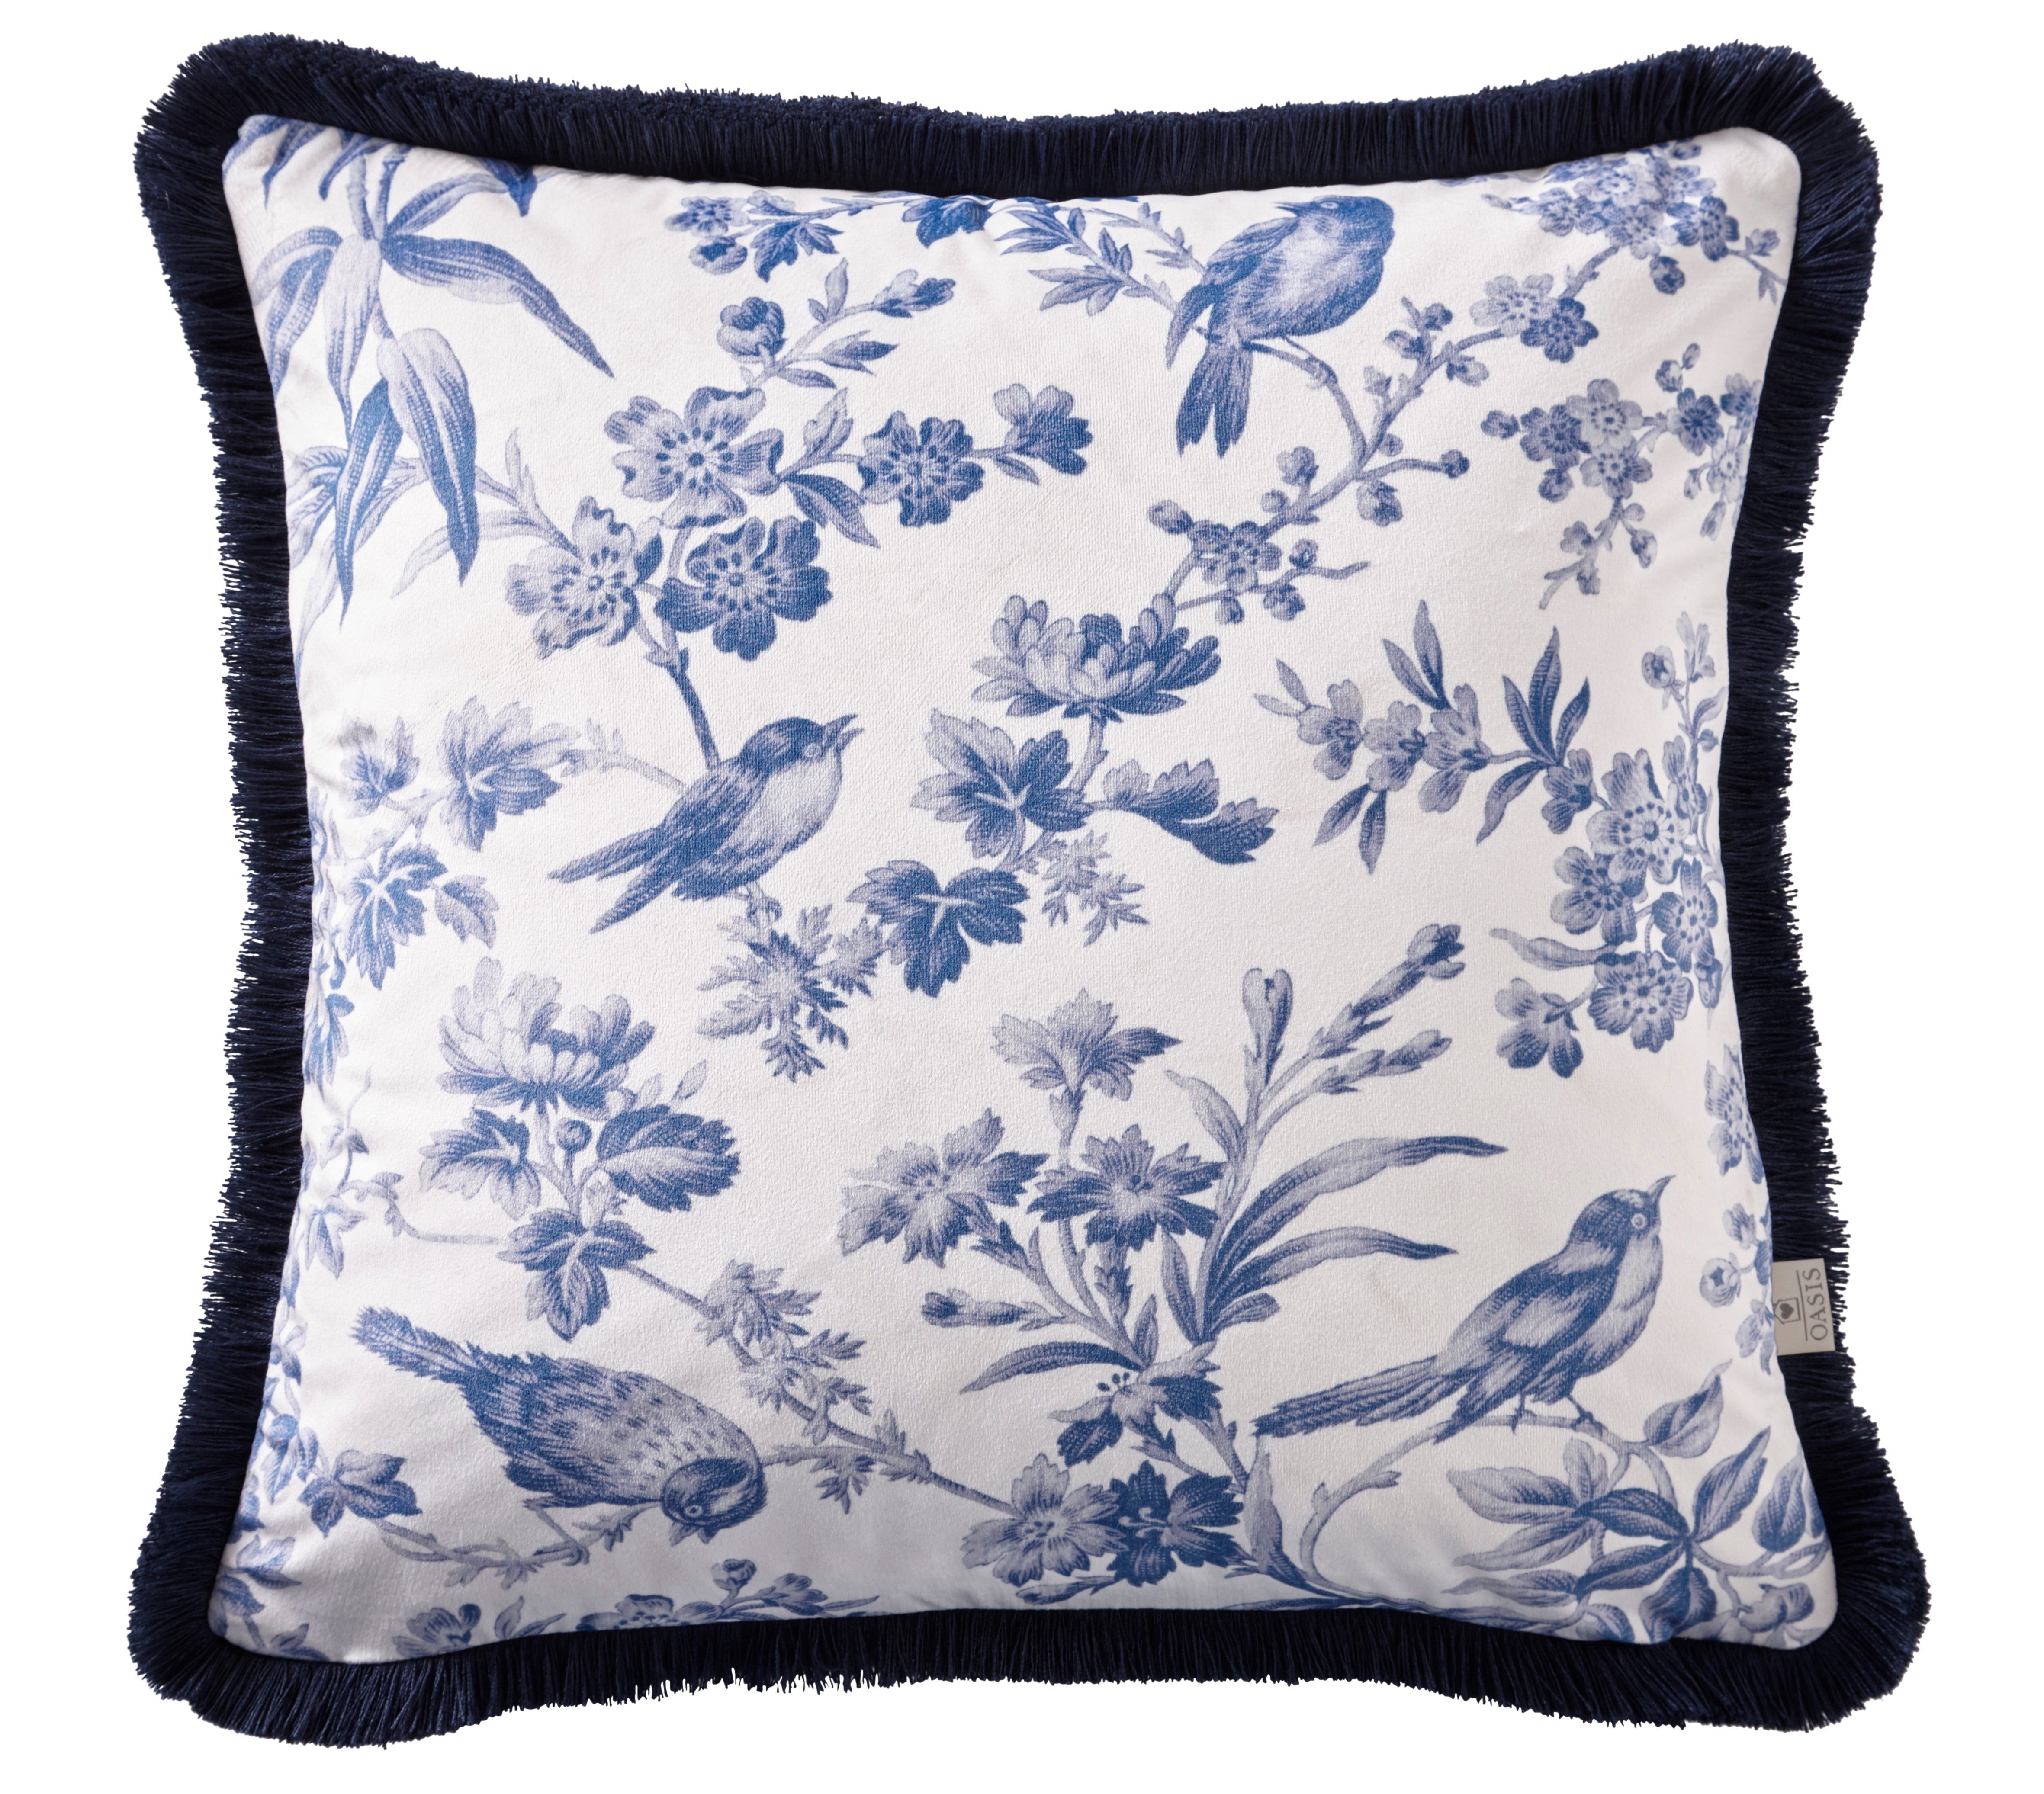 Oasis Designer 'Amelia' Floral Cushion | Blue & White - Your 4 Walls